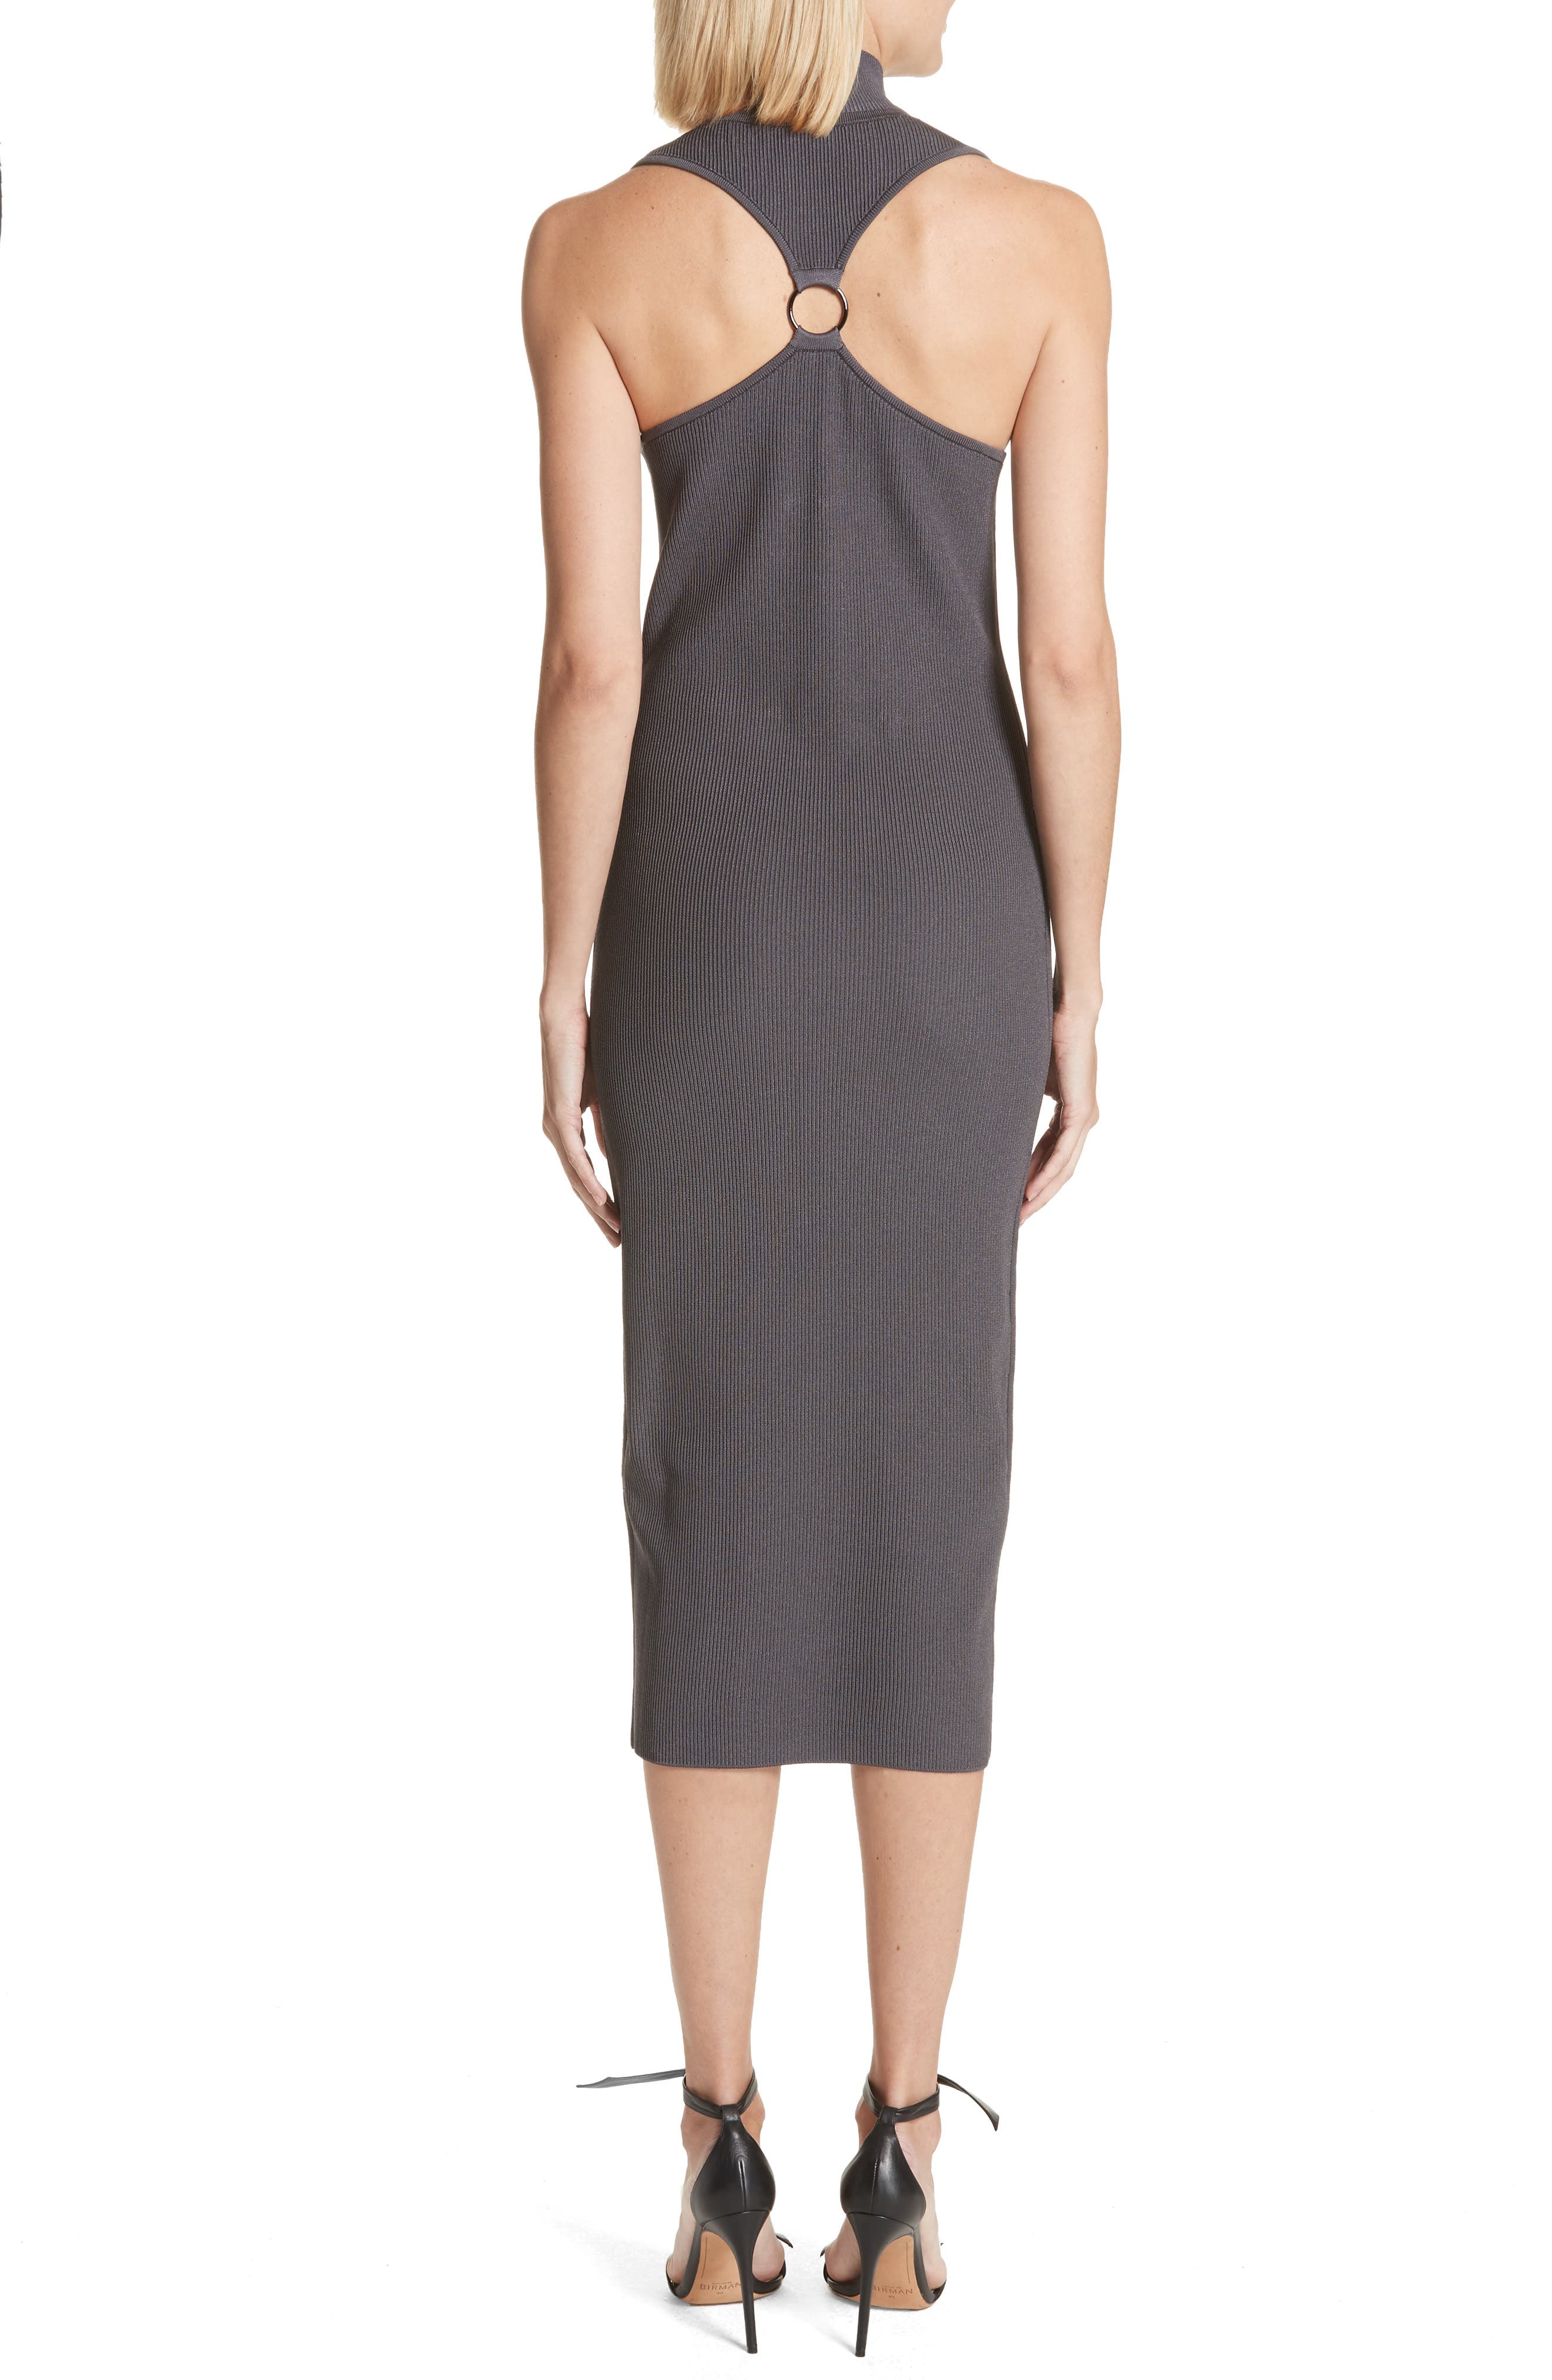 Alsia Cutout Knit Dress,                             Alternate thumbnail 2, color,                             Graphite/ Gunmetal